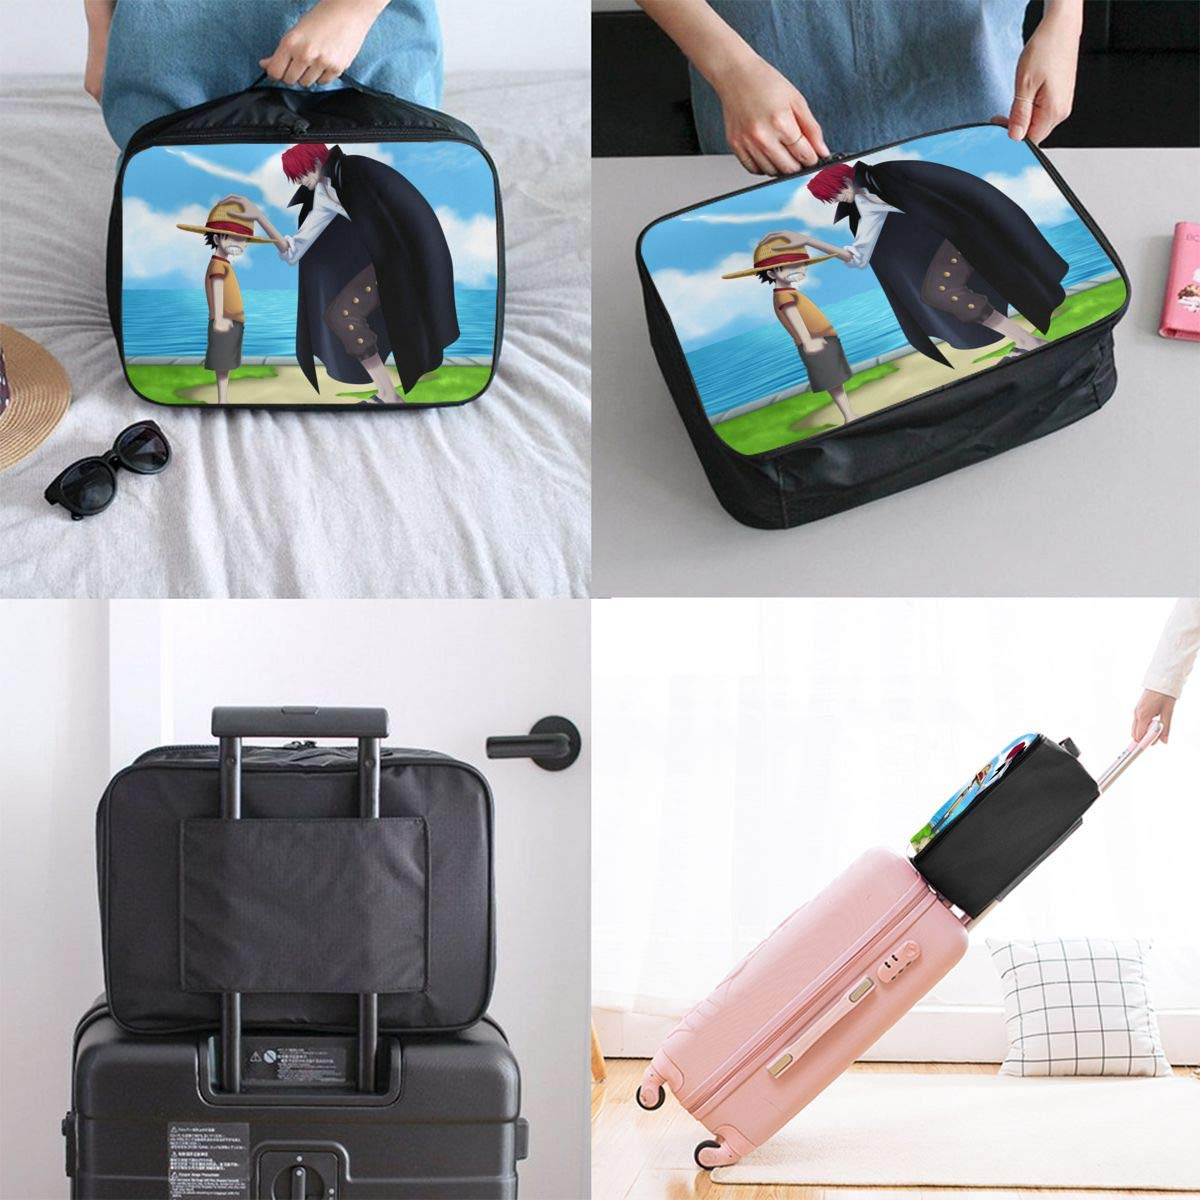 Anime One Piece Customize Casual Portable Travel Bag Suitcase Storage Bag Luggage Packing Tote Bag Trolley Bag